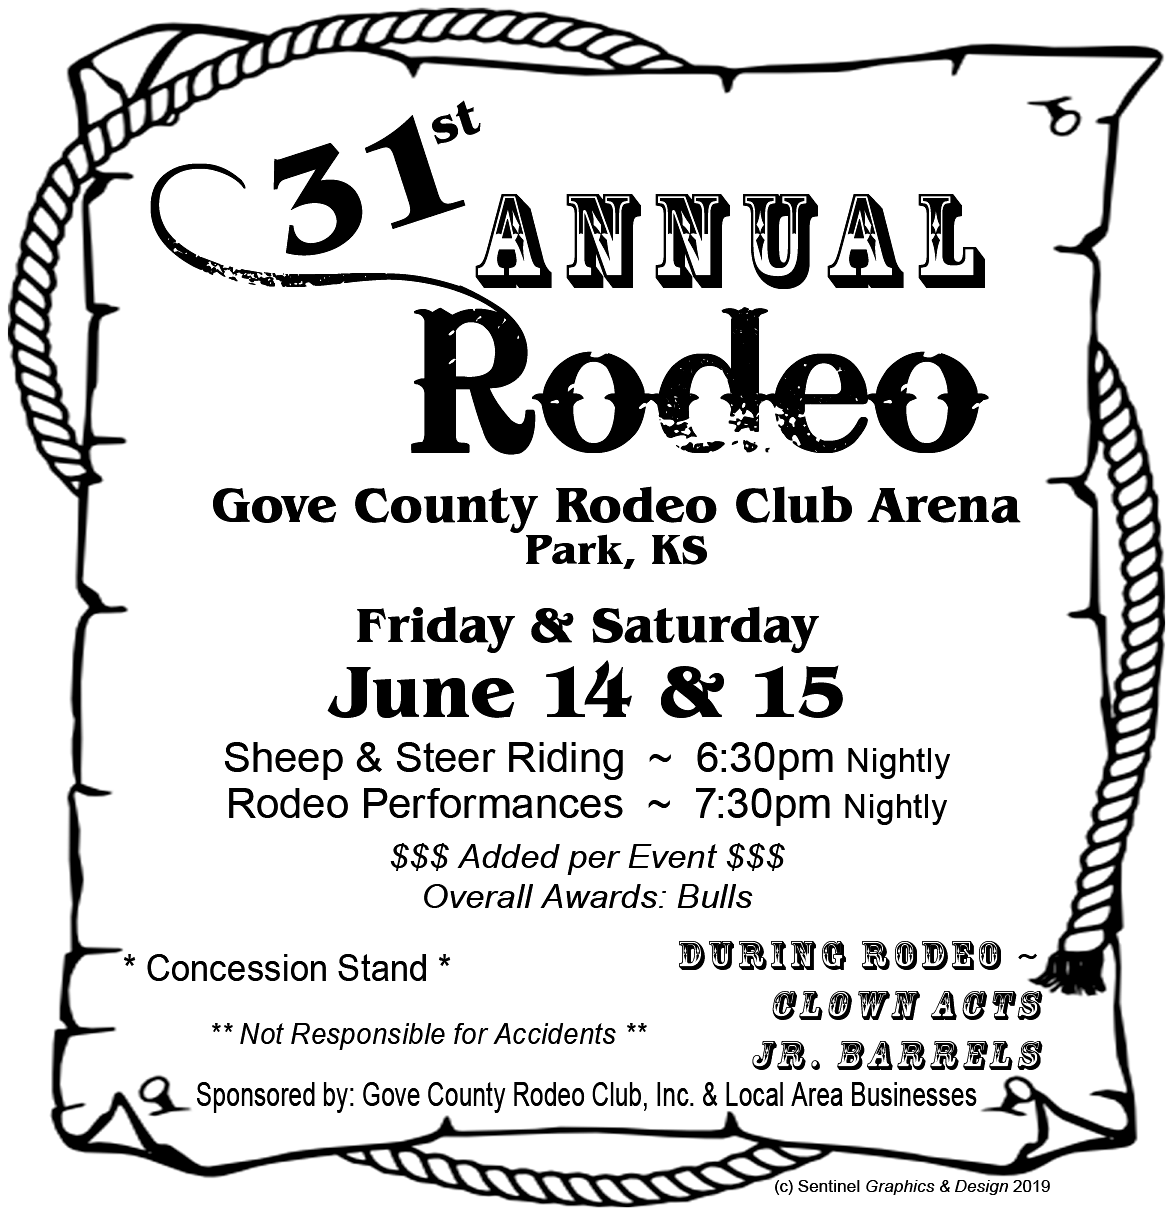 31st Annual Rodeo